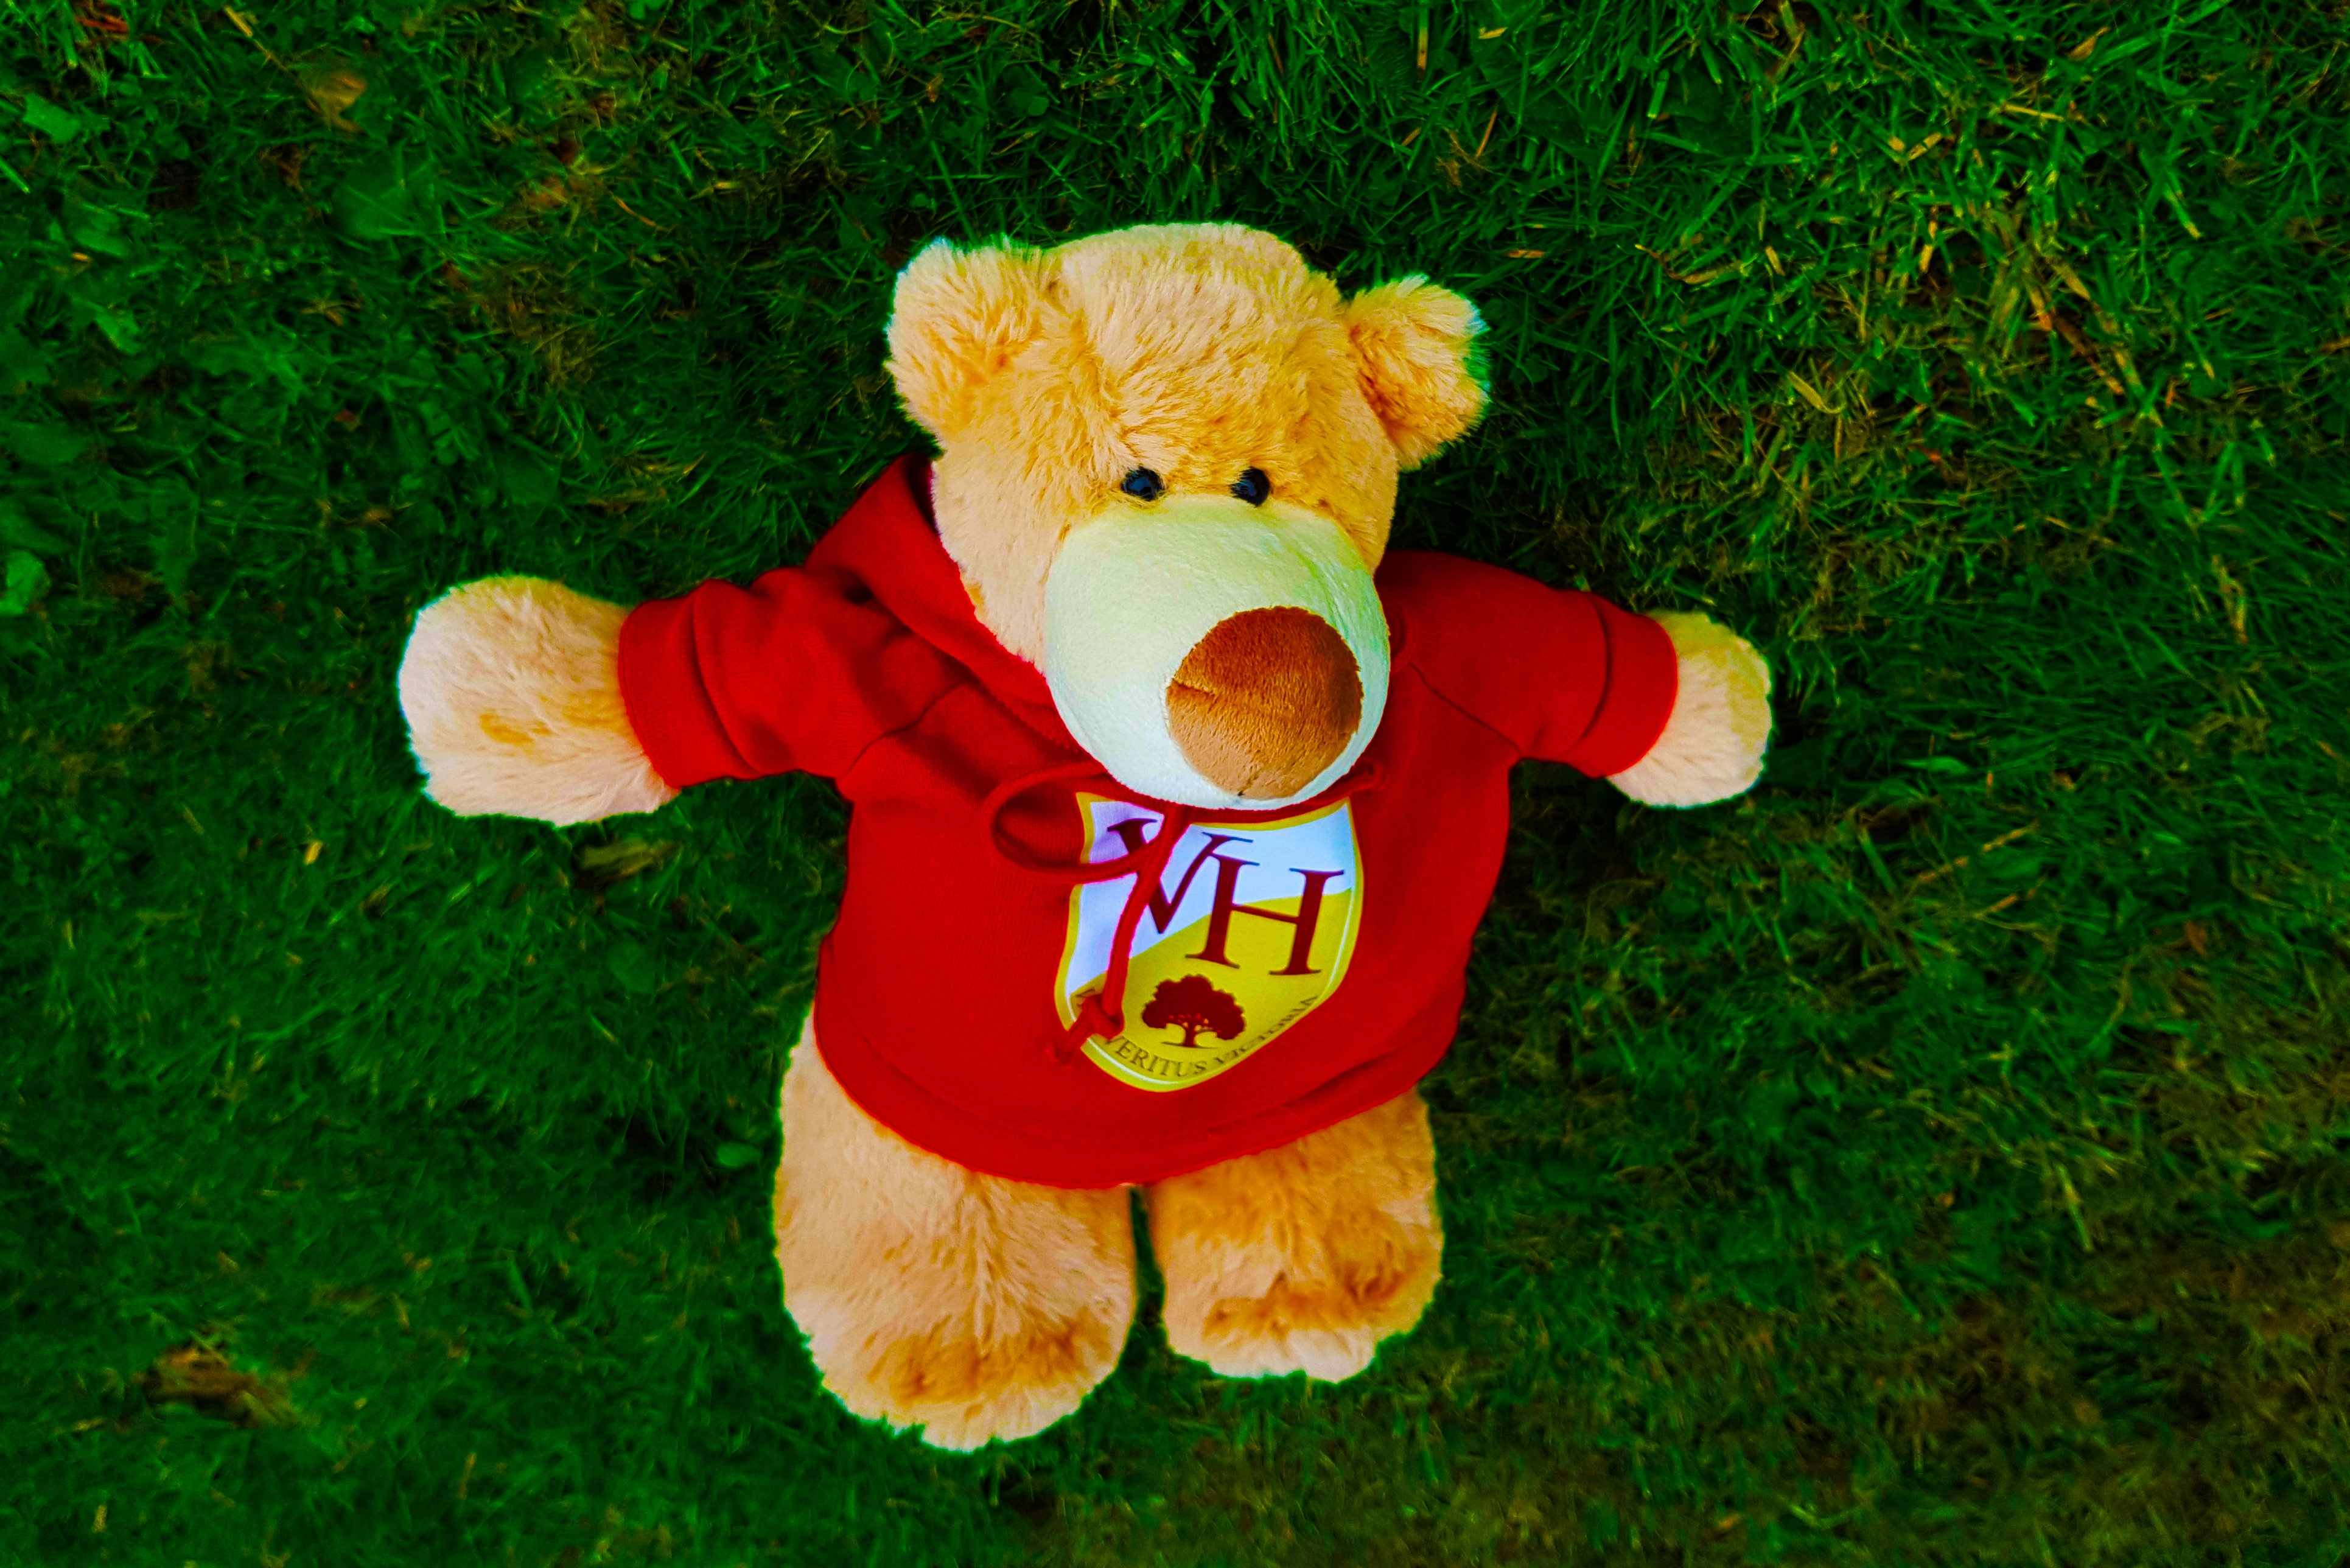 Image of the Victory heights Primary School VHP Teddy Bear that links home and school life for children